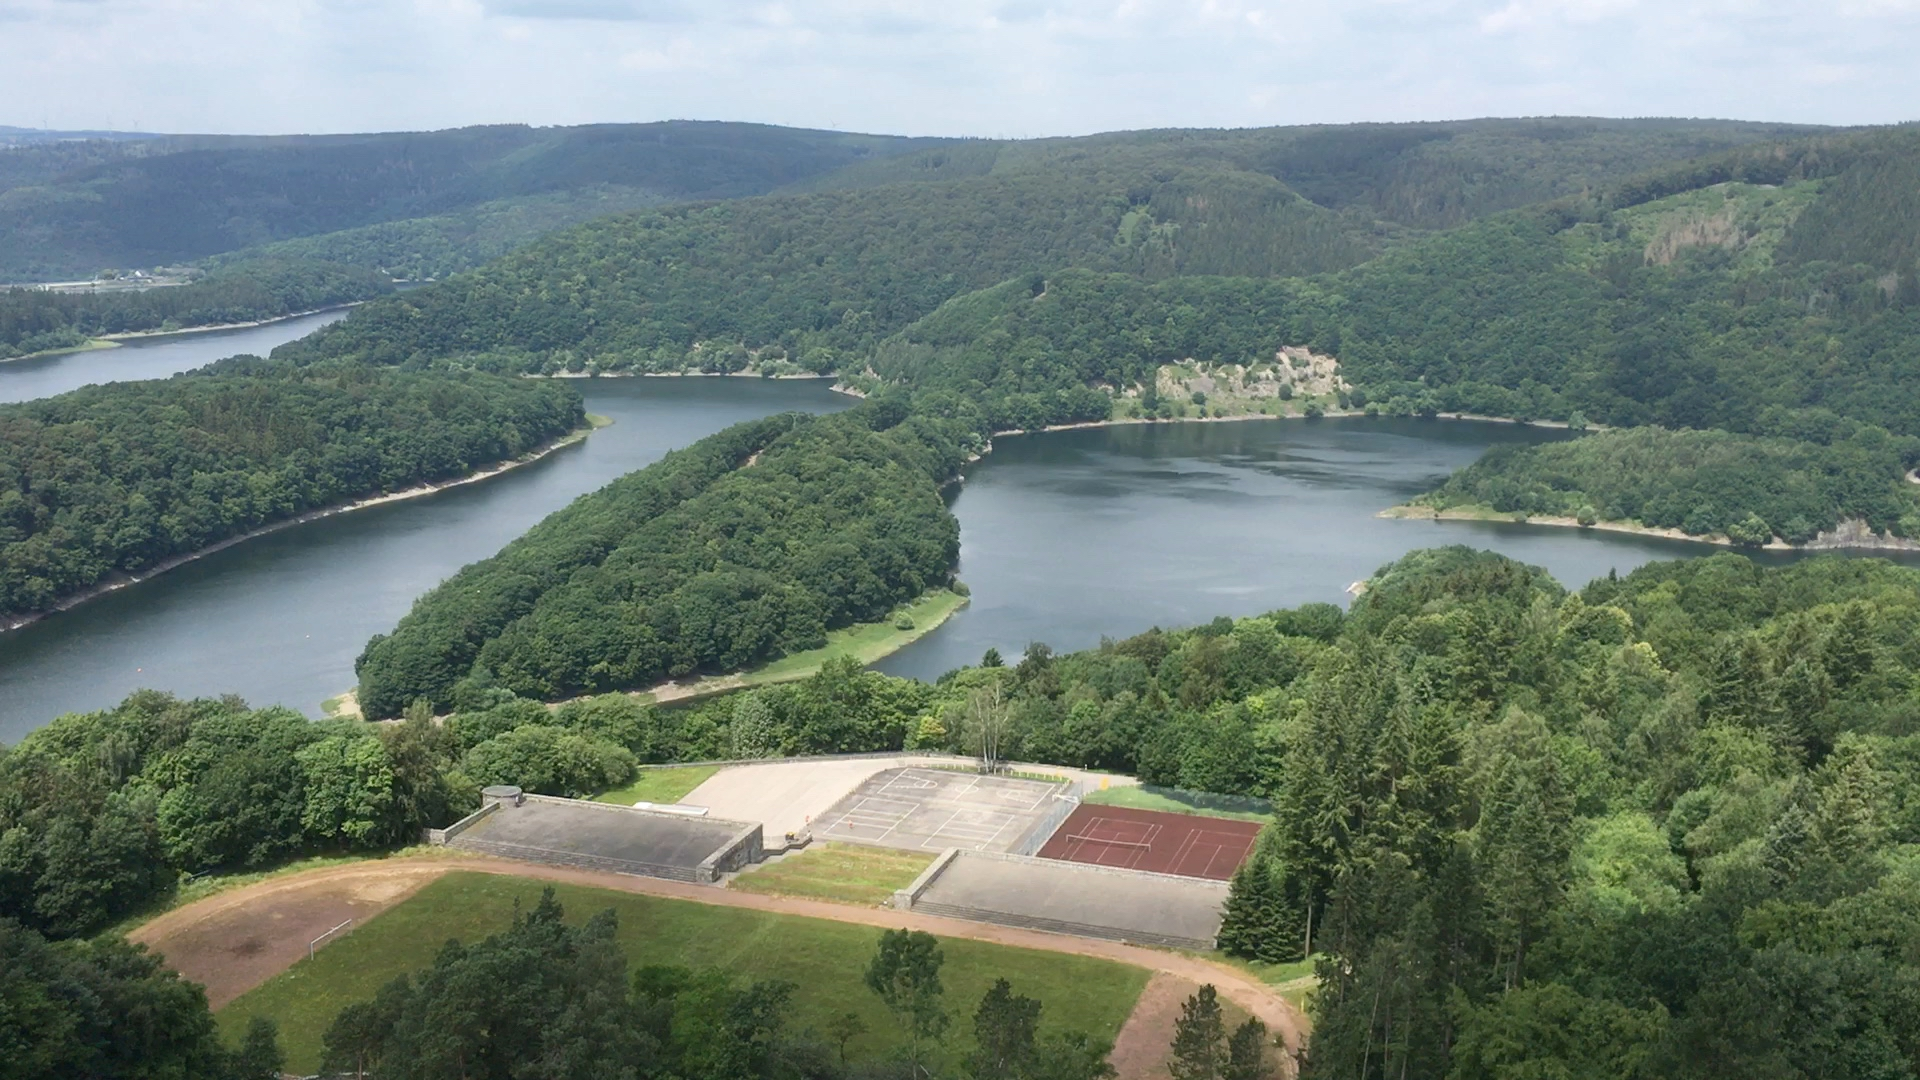 Nationalparkzentrum Eifel